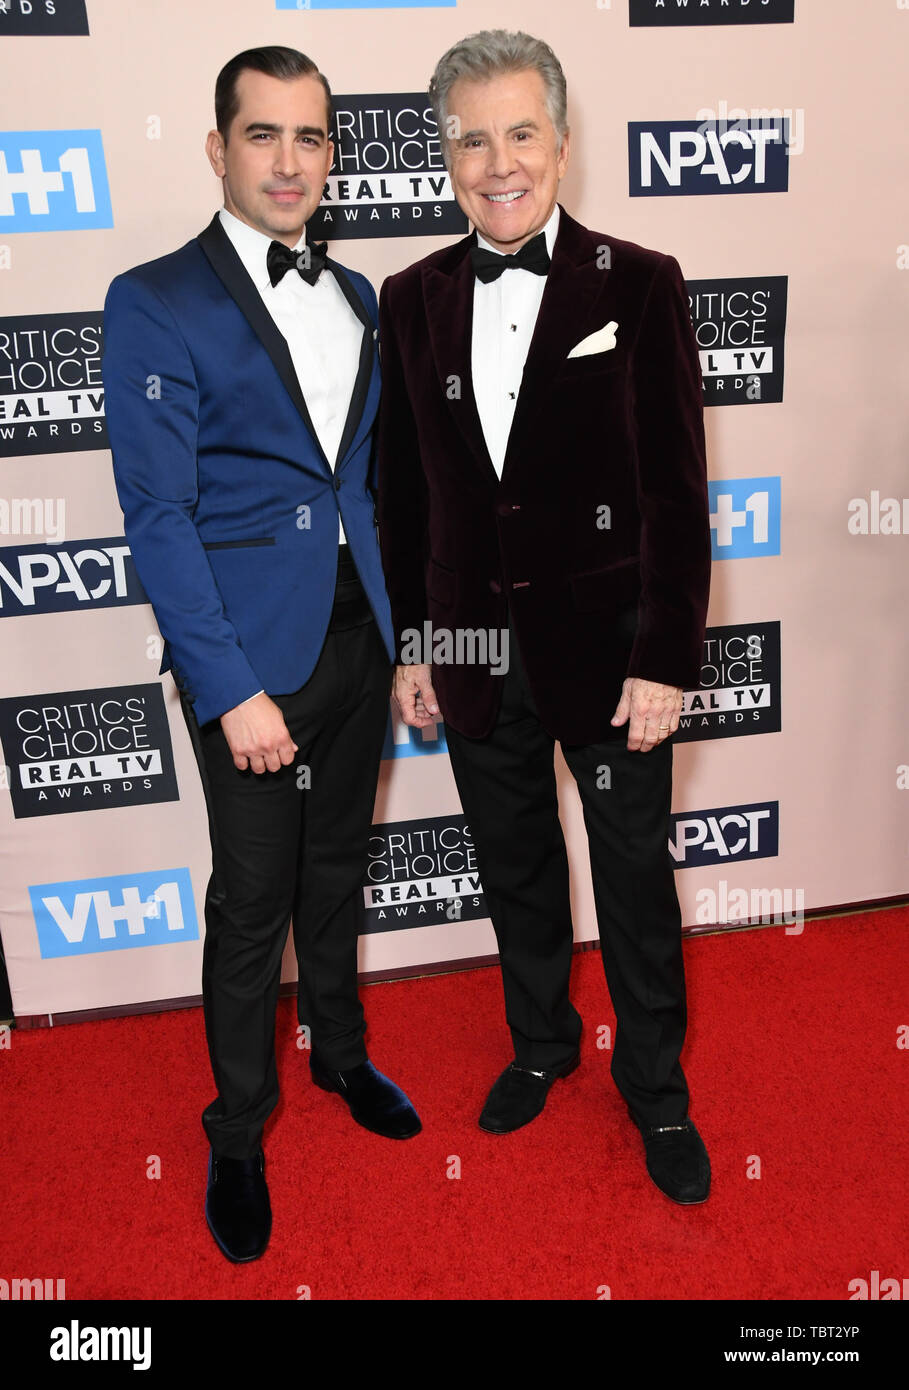 Callahan Walsh High Resolution Stock Photography And Images Alamy In pursuit with john walsh. https www alamy com june 2 2019 beverly hills california us 02 june 2019 beverly hills california callahan walsh john walsh 2019 critics choice real tv awards held at beverly hilton hotel photo credit birdie thompsonadmedia credit image birdie thompsonadmedia via zuma wire image248235562 html